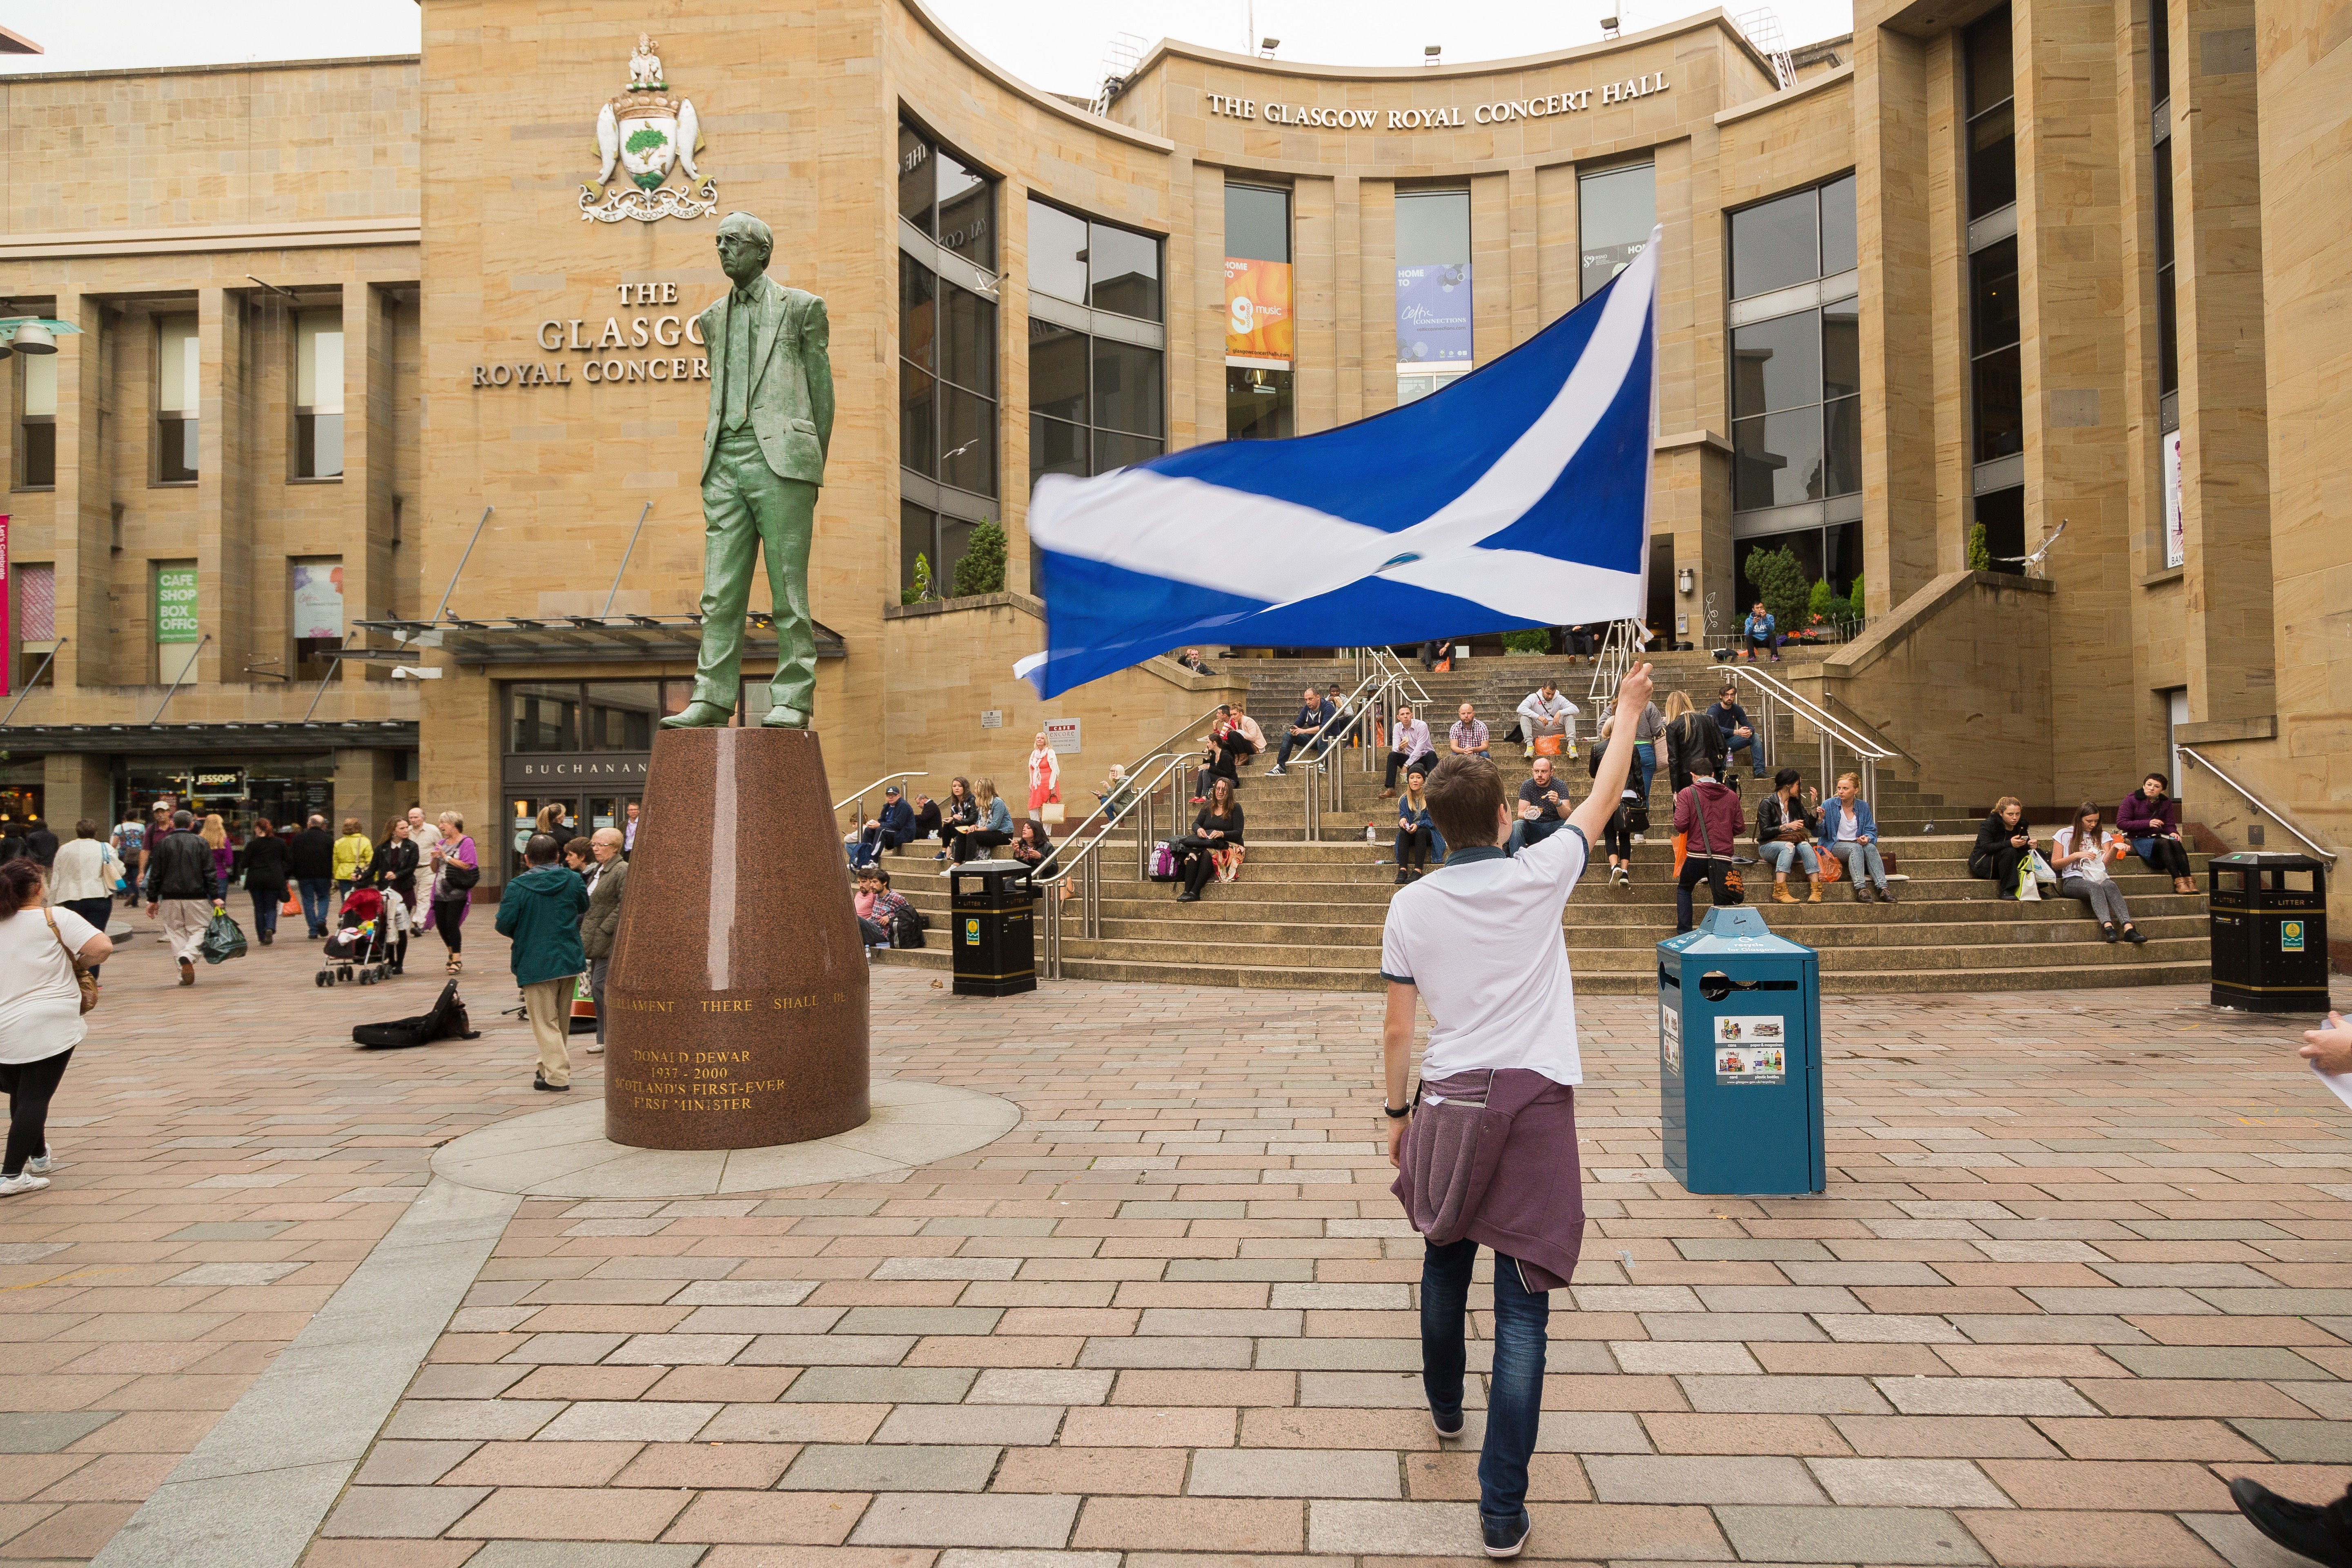 A Yes campaign supporter flies a large Scotland flag close to the statue of Donald Dewar in Buchanan Street on Sept. 4, 2014.